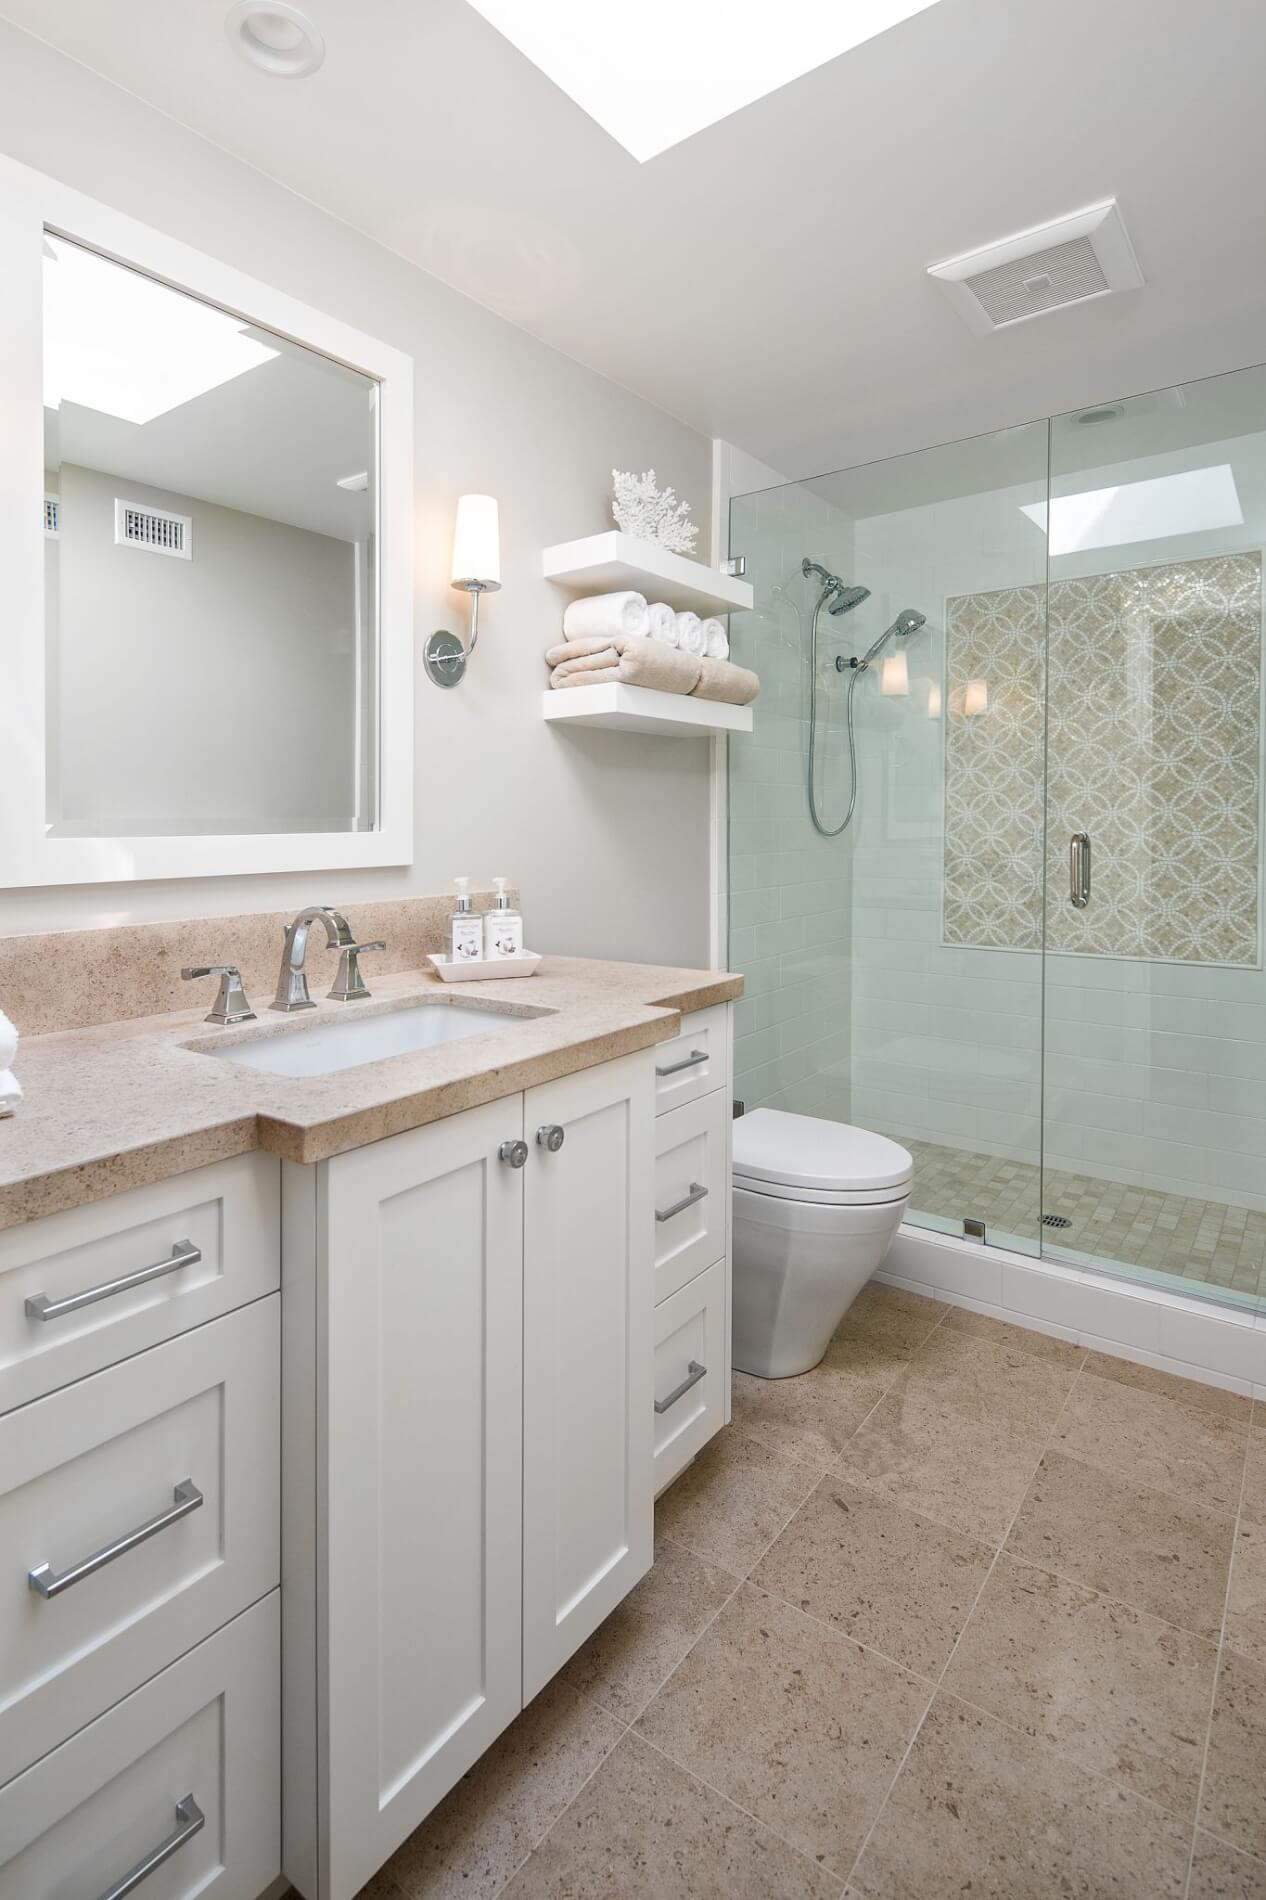 A Bathroom Remodel Delivers Amazing Value Sea Pointe Construction - How to plan a bathroom remodel